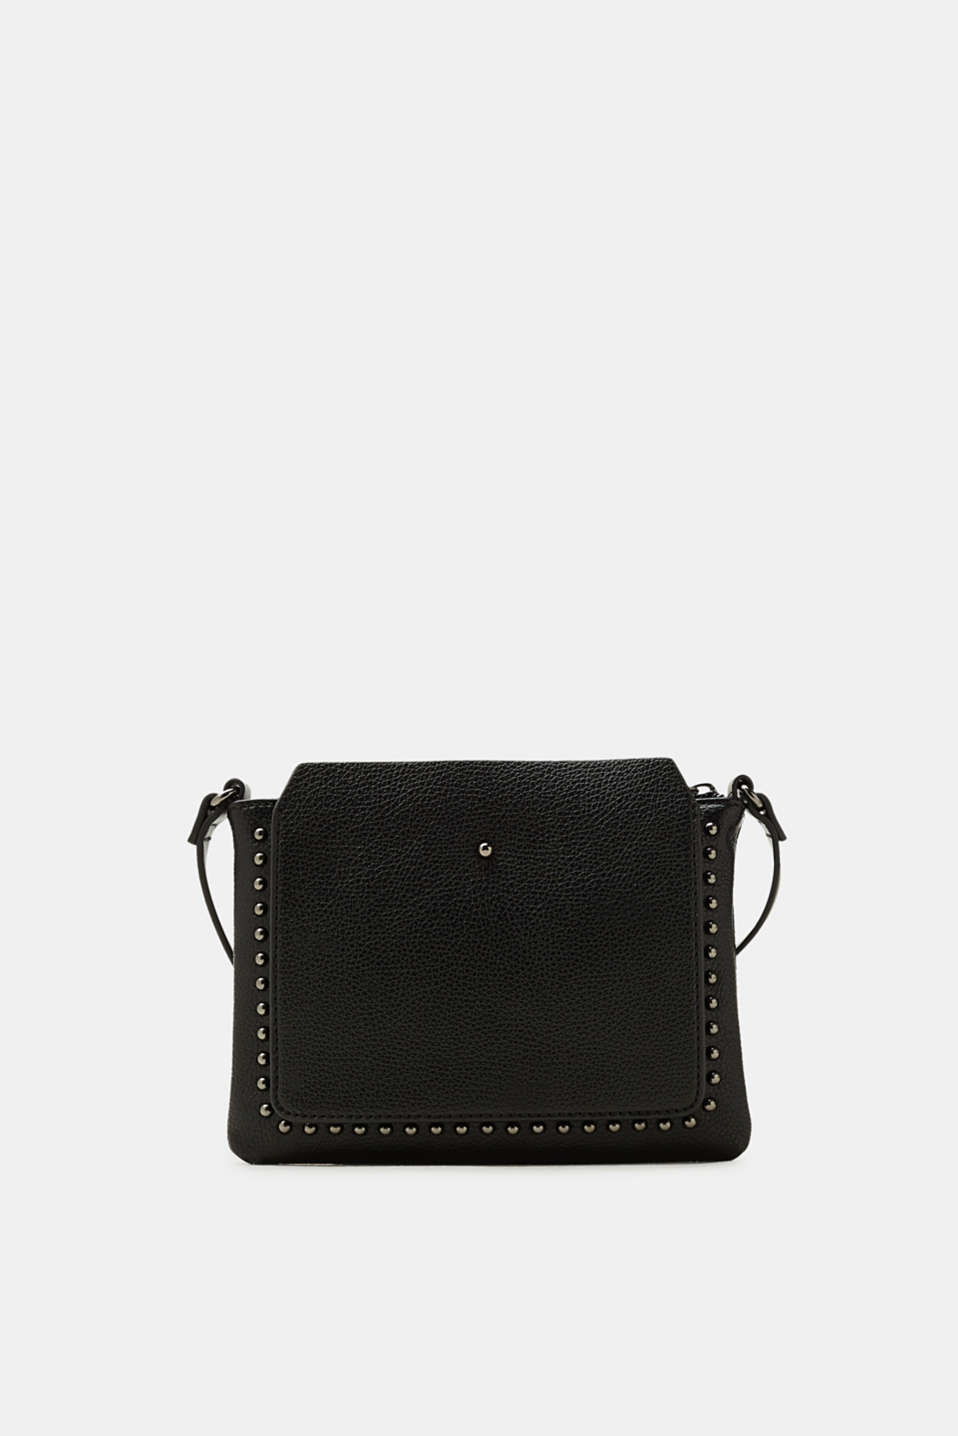 edc - Shoulder bag with stud embellishments